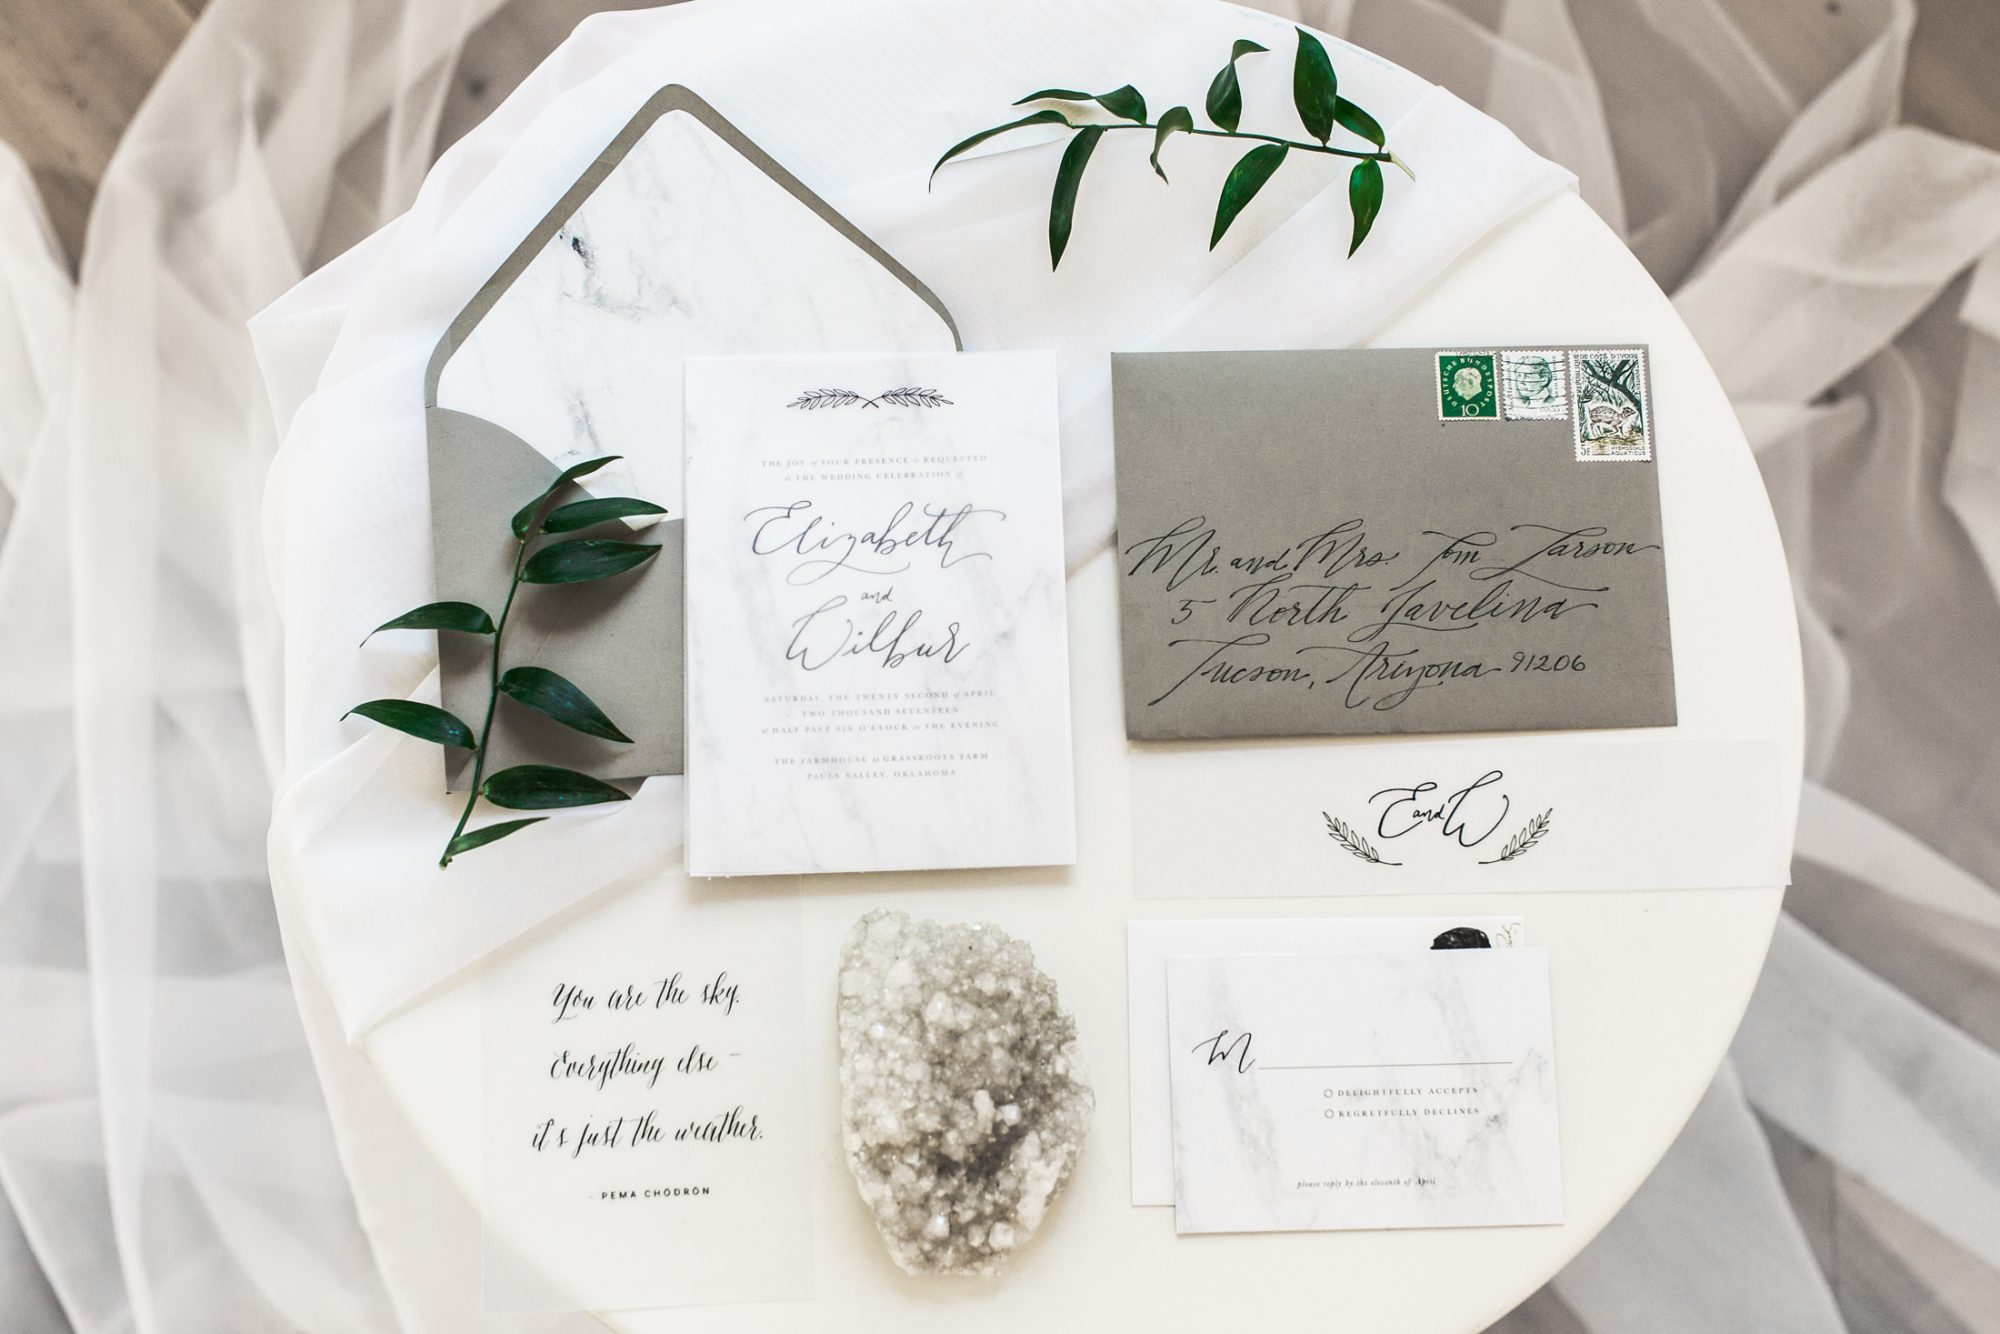 gray and white stationary suit wedding invites with marble accents